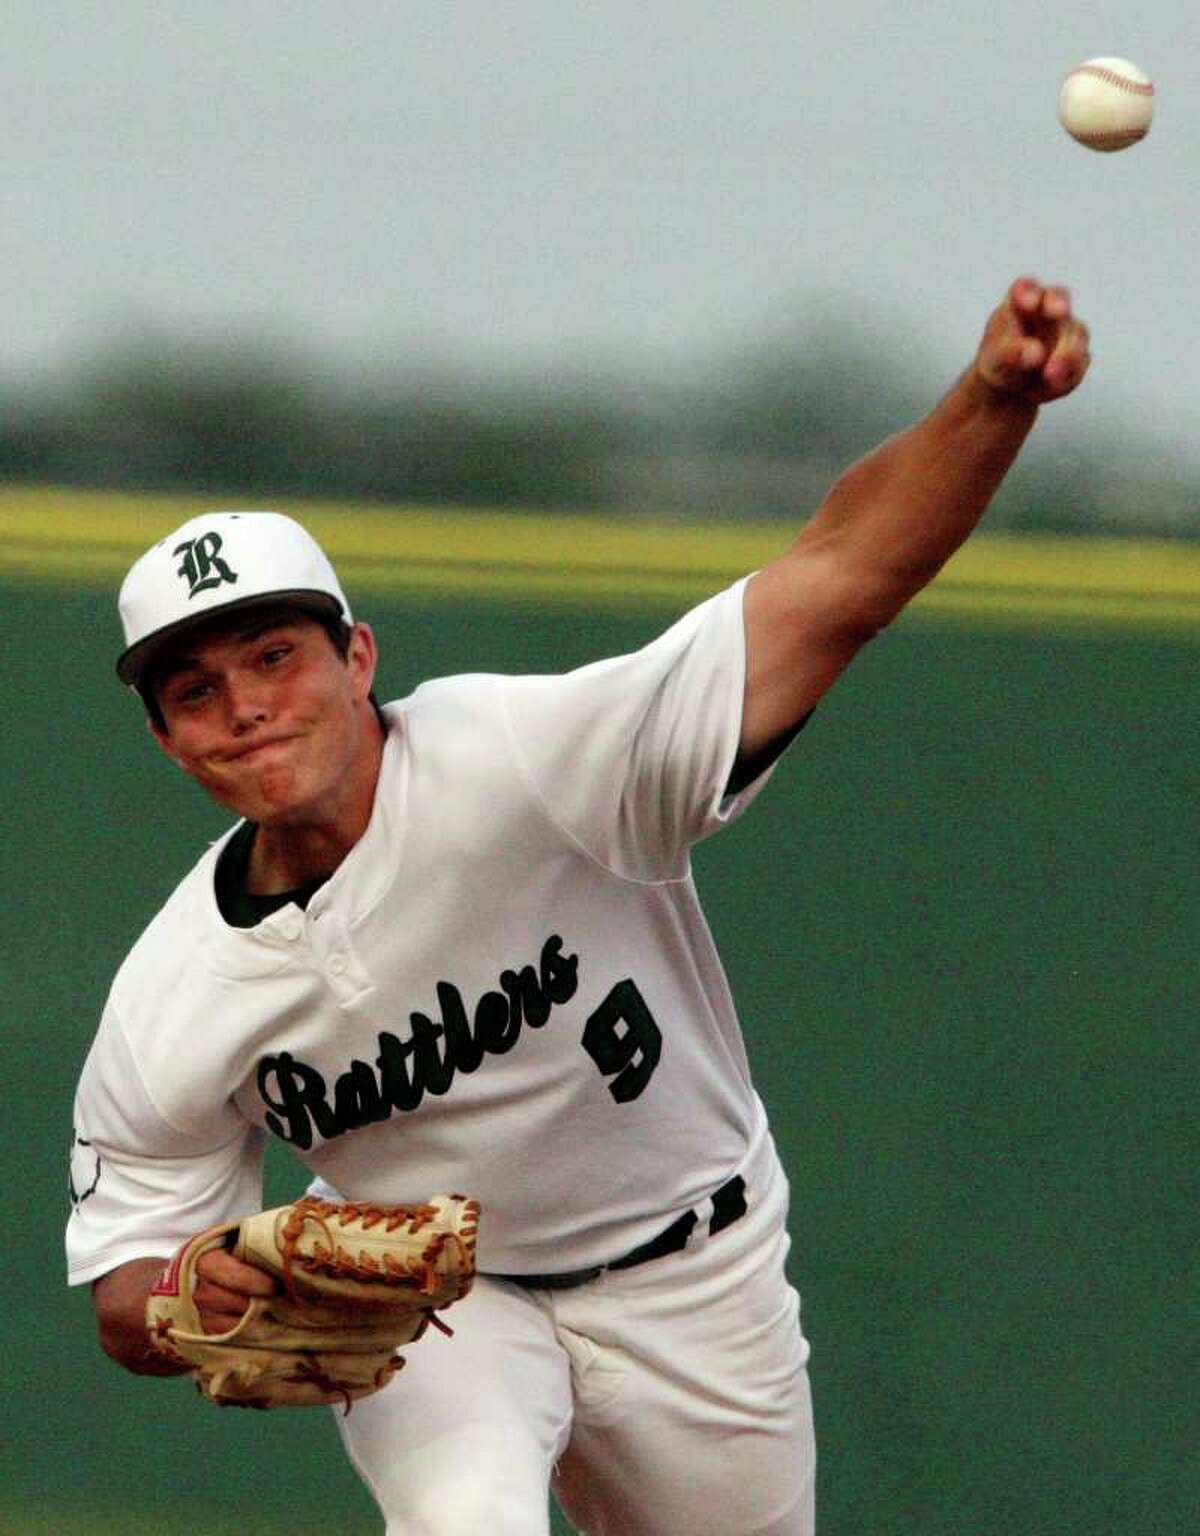 FOR SPORTS - Reagan's Matt McClain pitches against Johnson Thursday April 21, 2011 at Blossom baseball field. (PHOTO BY EDWARD A. ORNELAS/eaornelas@express-news.net)